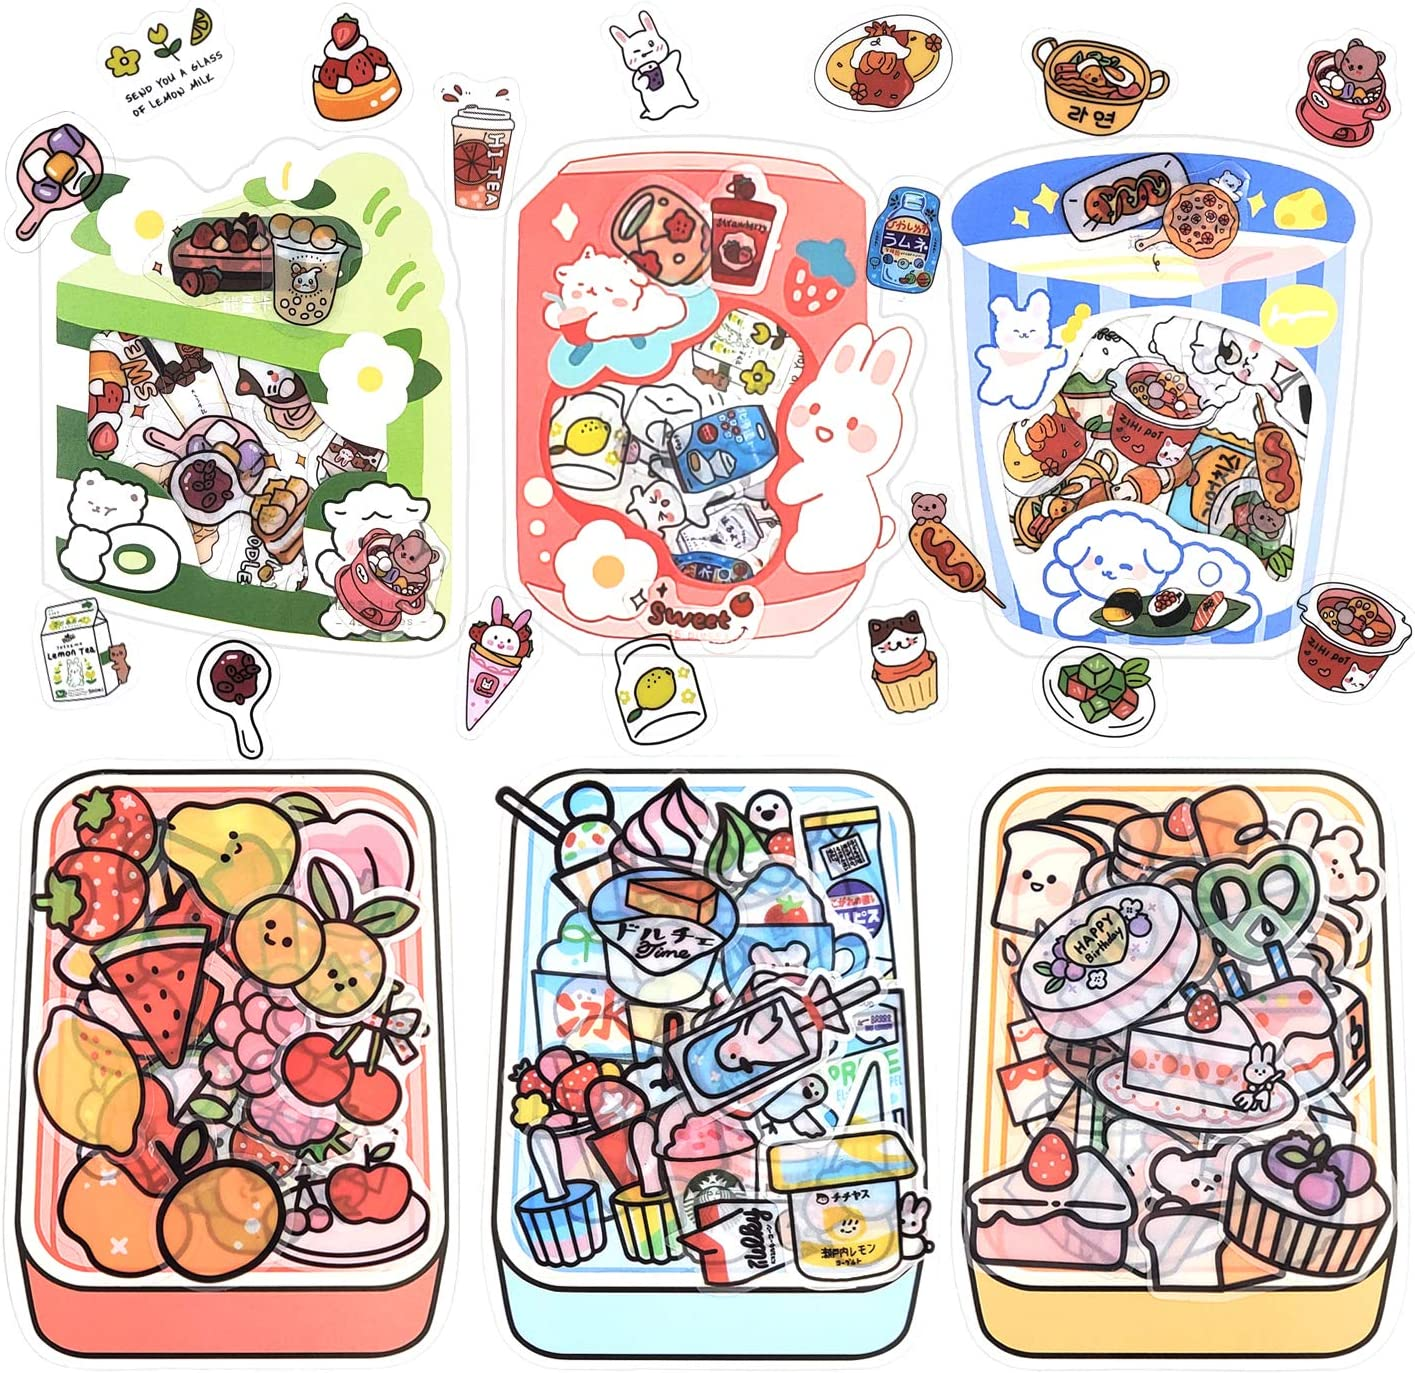 255 Sheets Scrapbooking Stickers for Adults Cute Stickers Kawaii Snack Planner Sticker Decoration Sticker with Delicious Food Pattern for Scrapbooking Diary Album Journals Cards DIY Arts (Yummy)